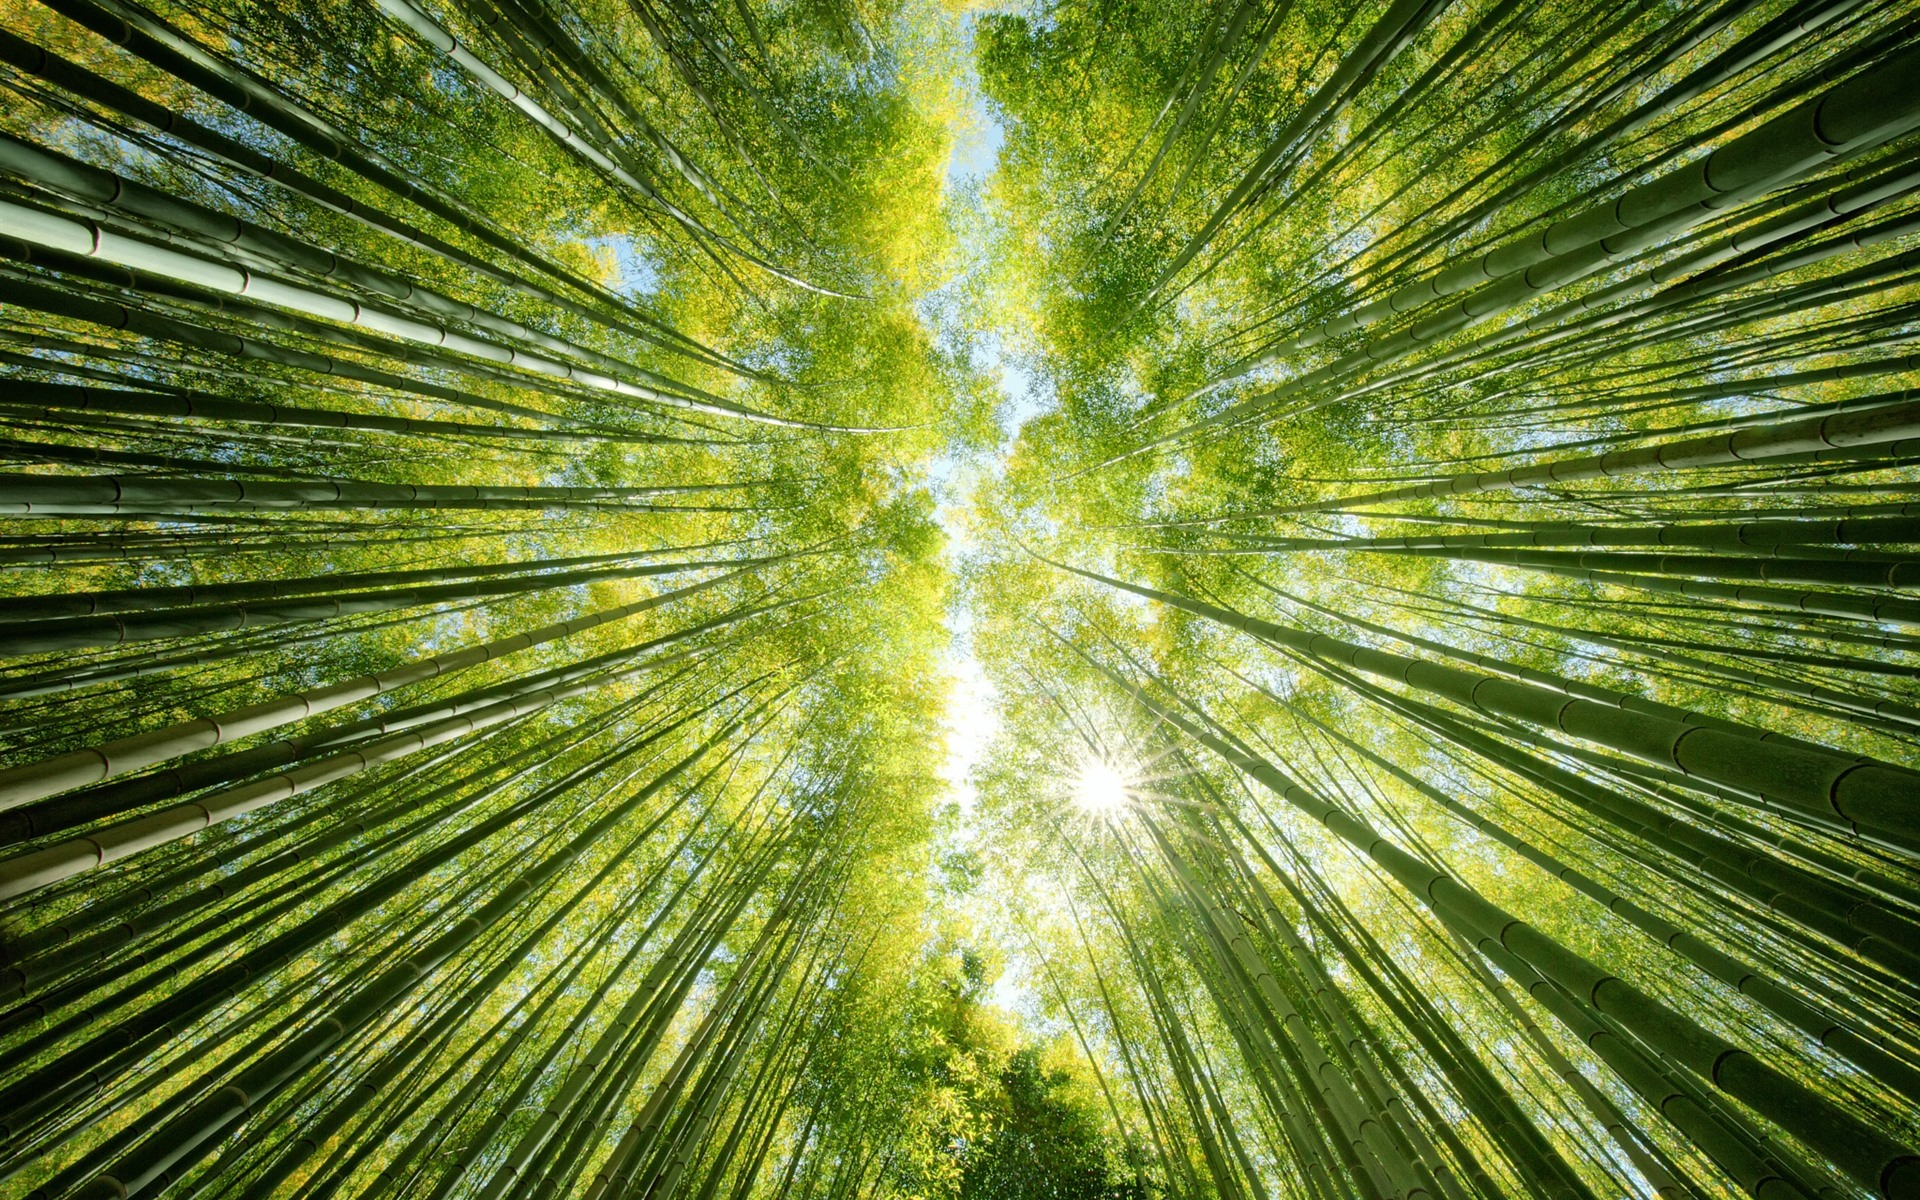 Wallpaper Bamboo Forest, Green, Sun Rays, From Bottom - Bamboo Forest Wallpaper Iphone - HD Wallpaper